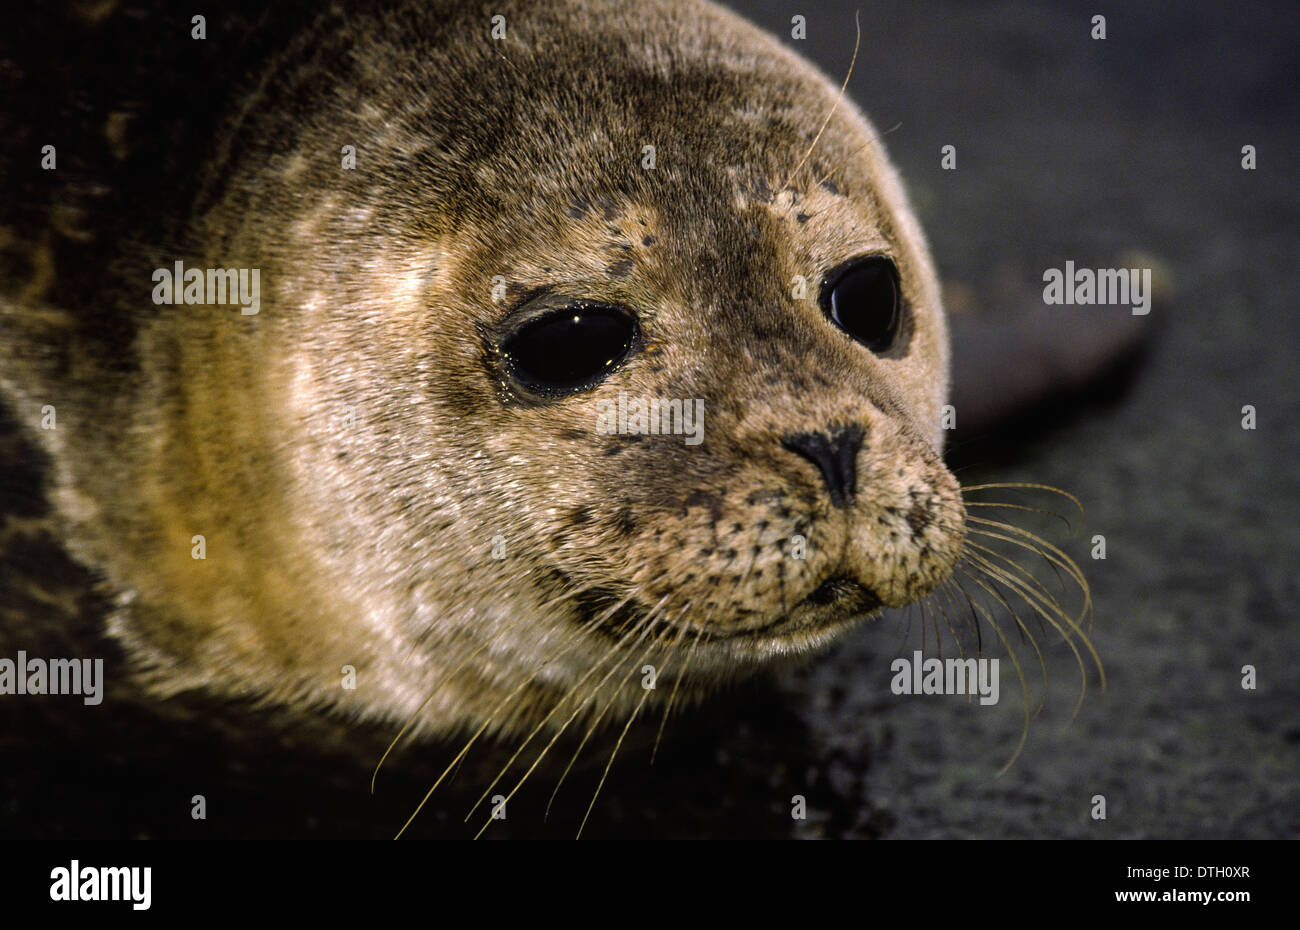 COMMON [ HARBOUR ] SEAL PUP (Phoca vitulina)  IN THE  ORKNEY ISLANDS SCOTLAND - Stock Image